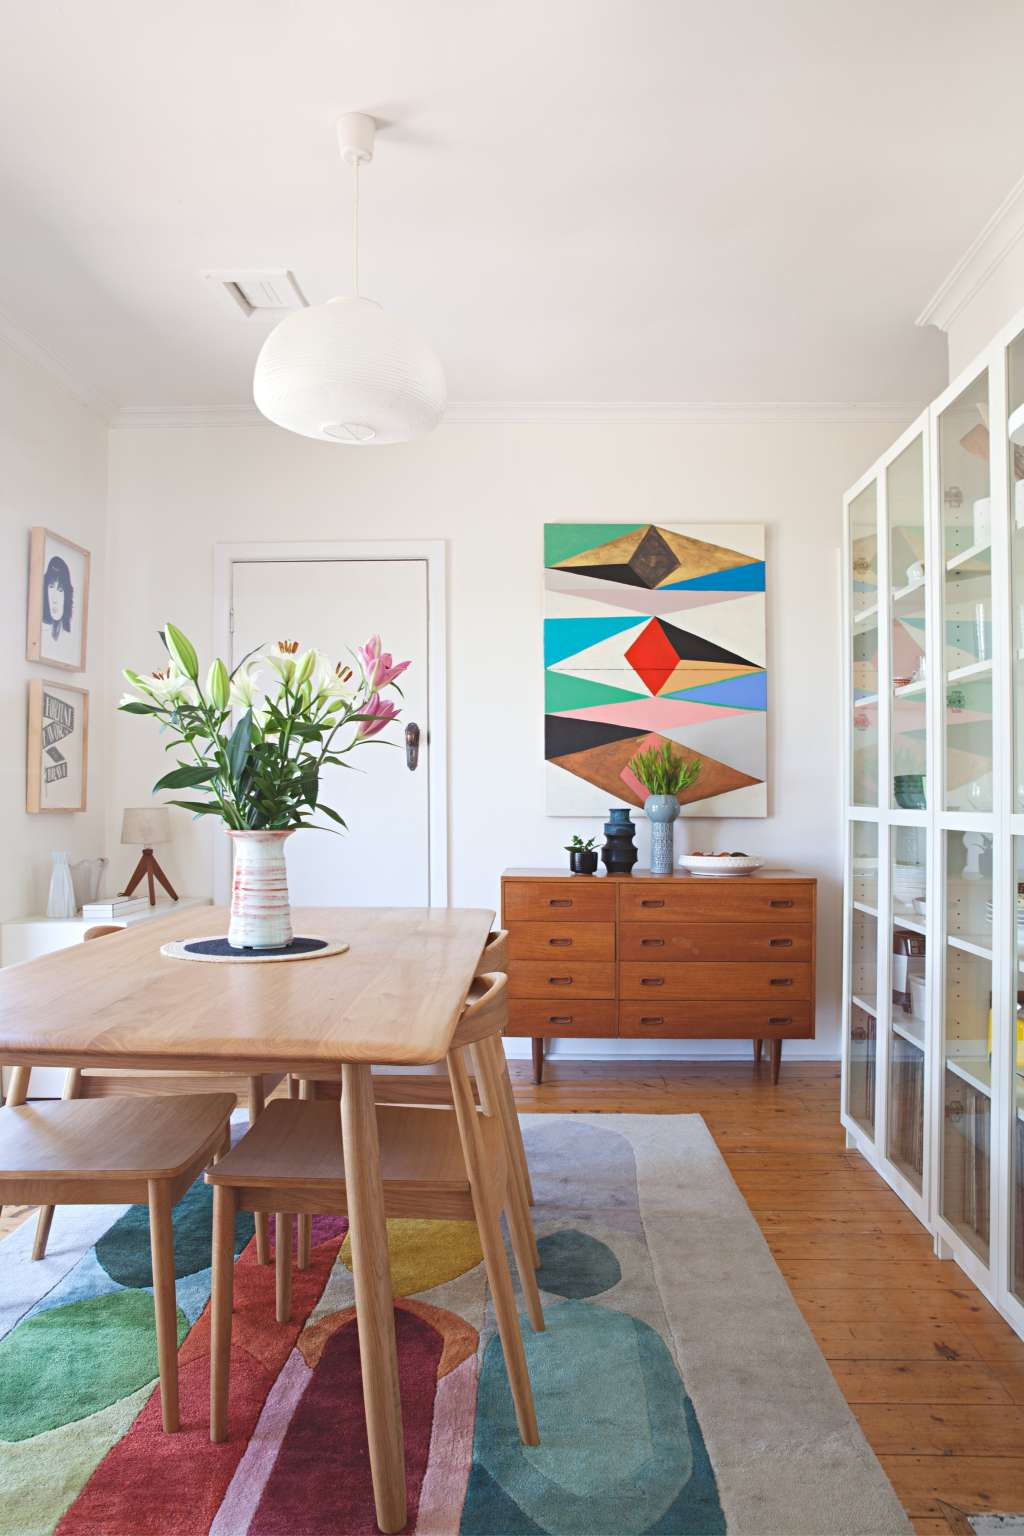 Do You Know the Right Height For Hanging Art?